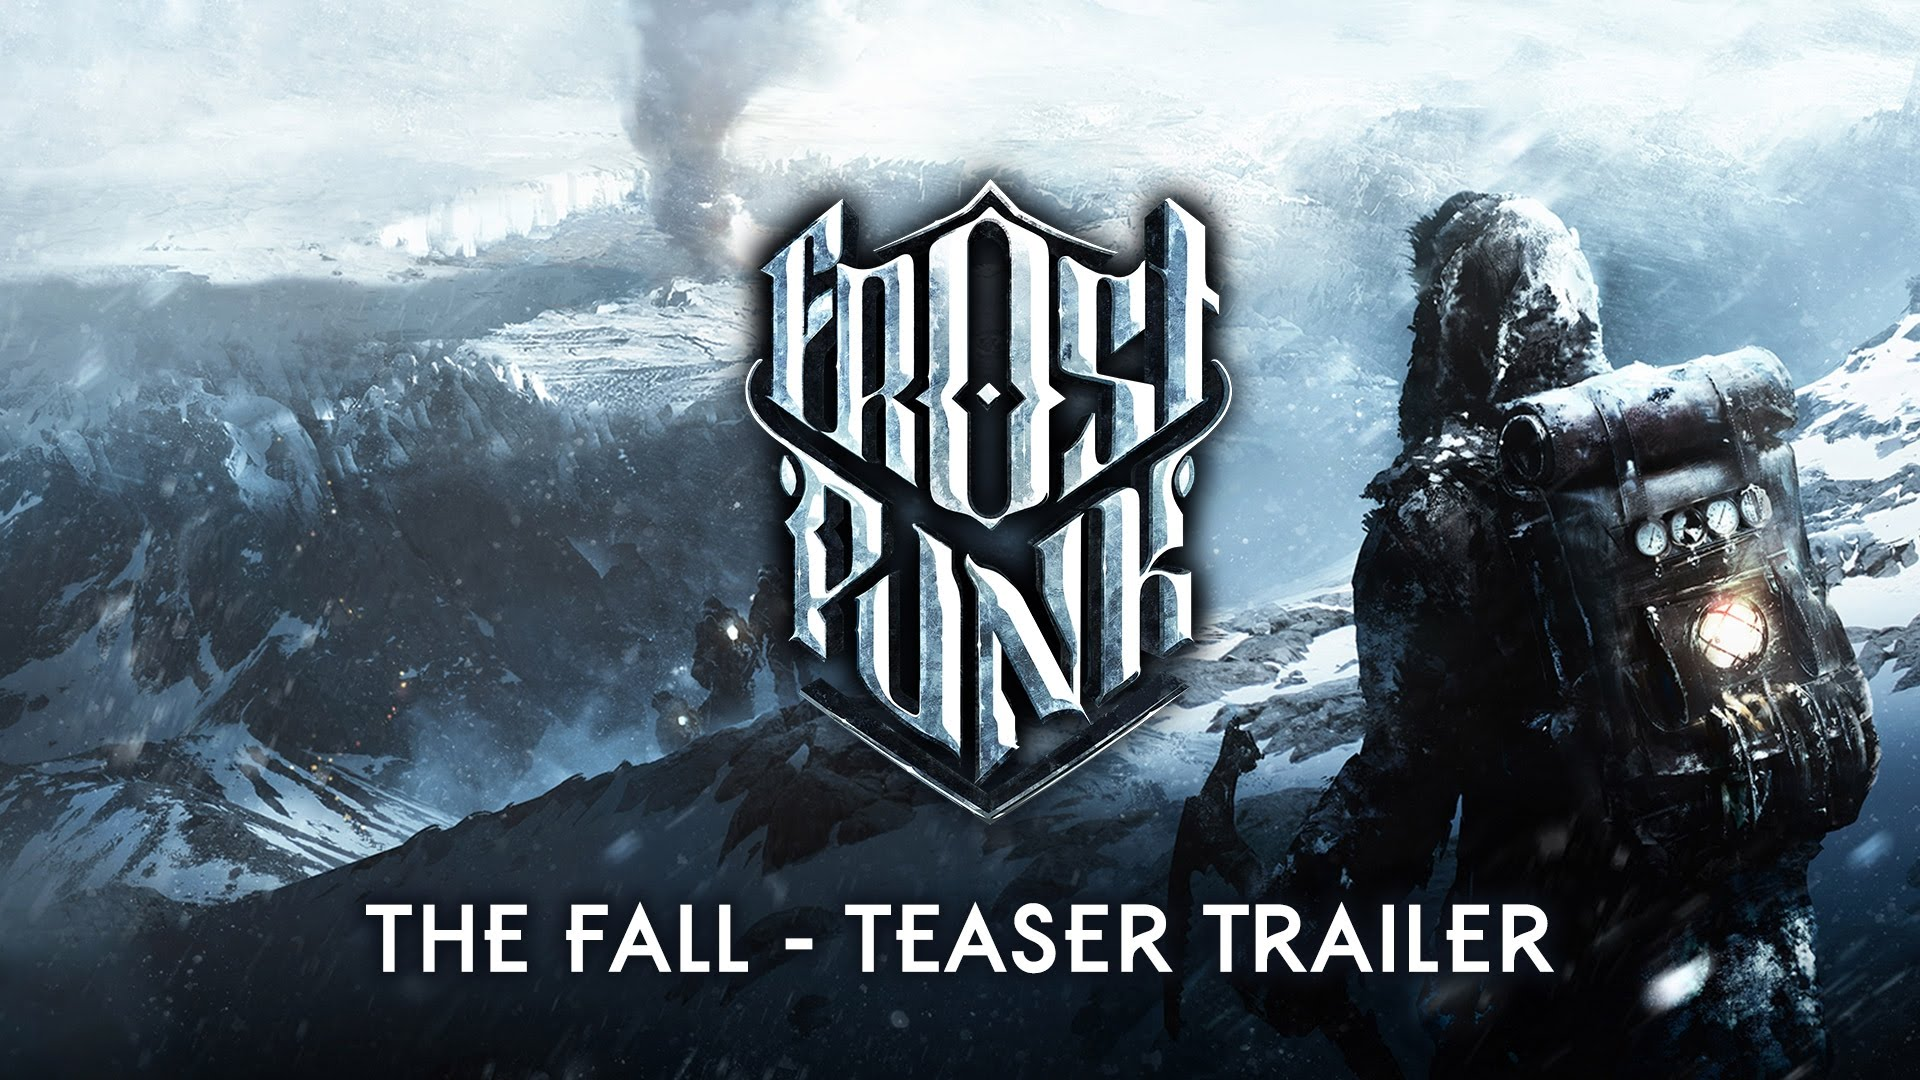 Frostpunk teaser trailer - The Fall